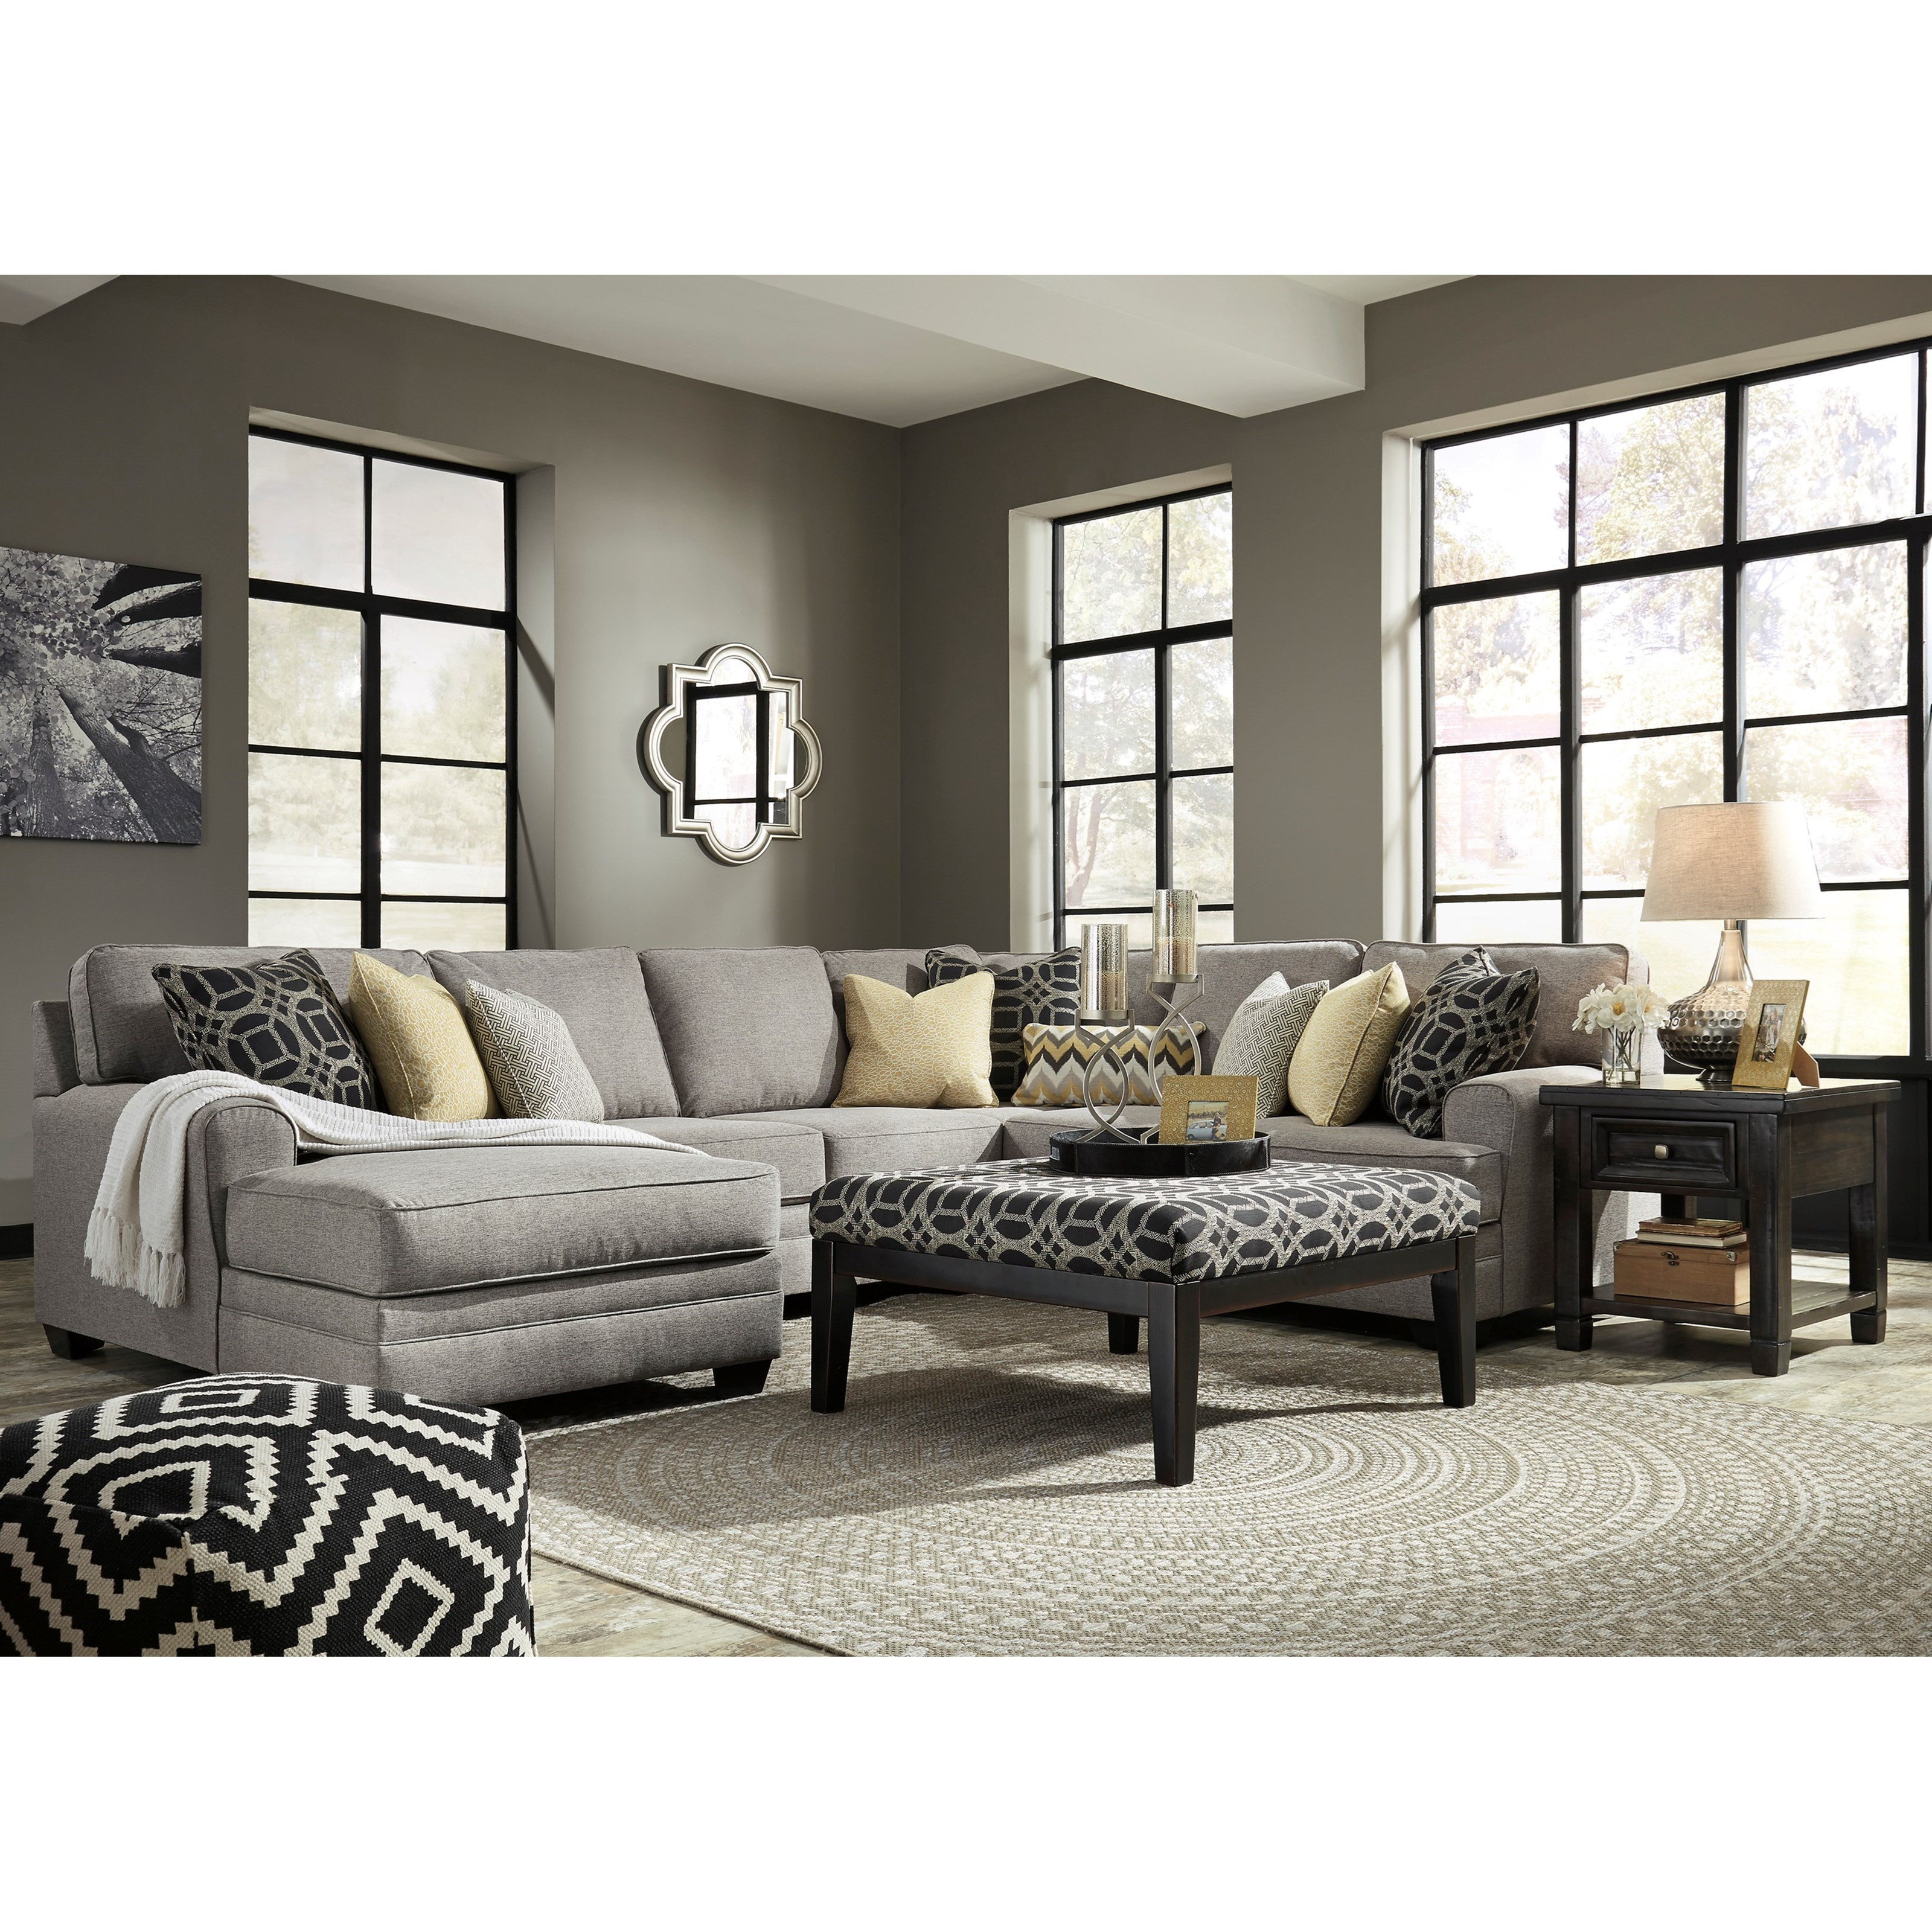 Living room group john v schultz furniture stationary living room